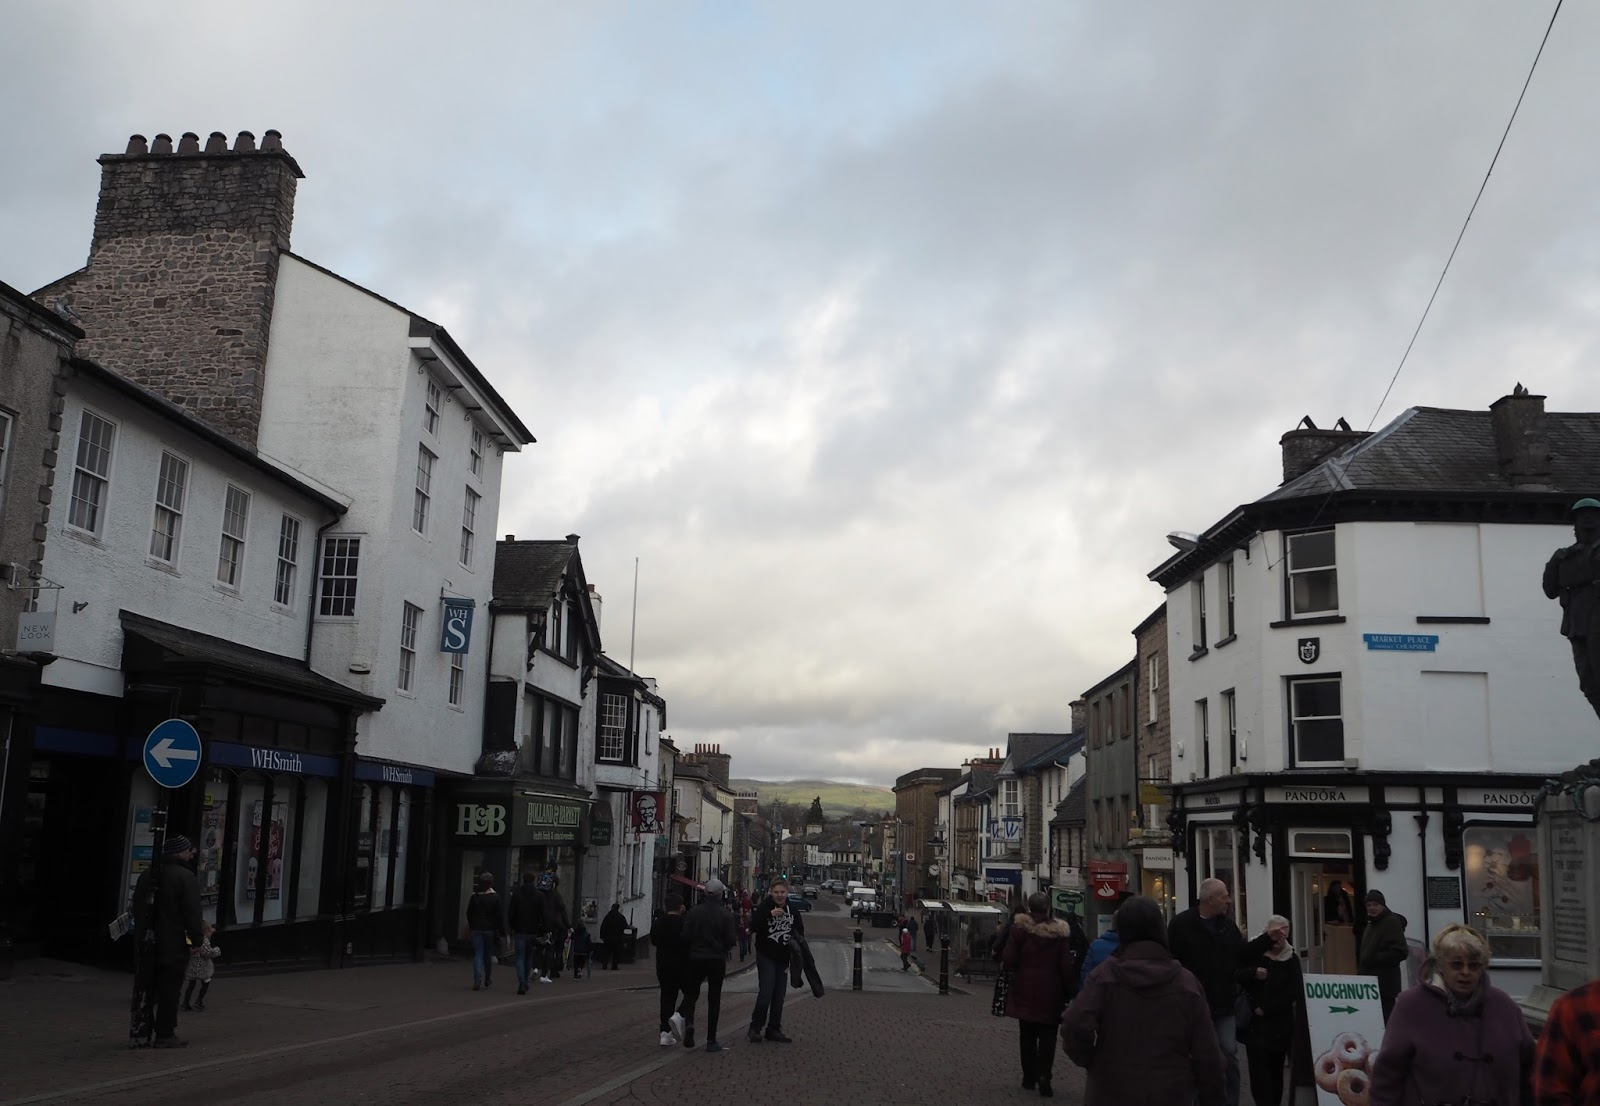 Main shopping street, Kendal